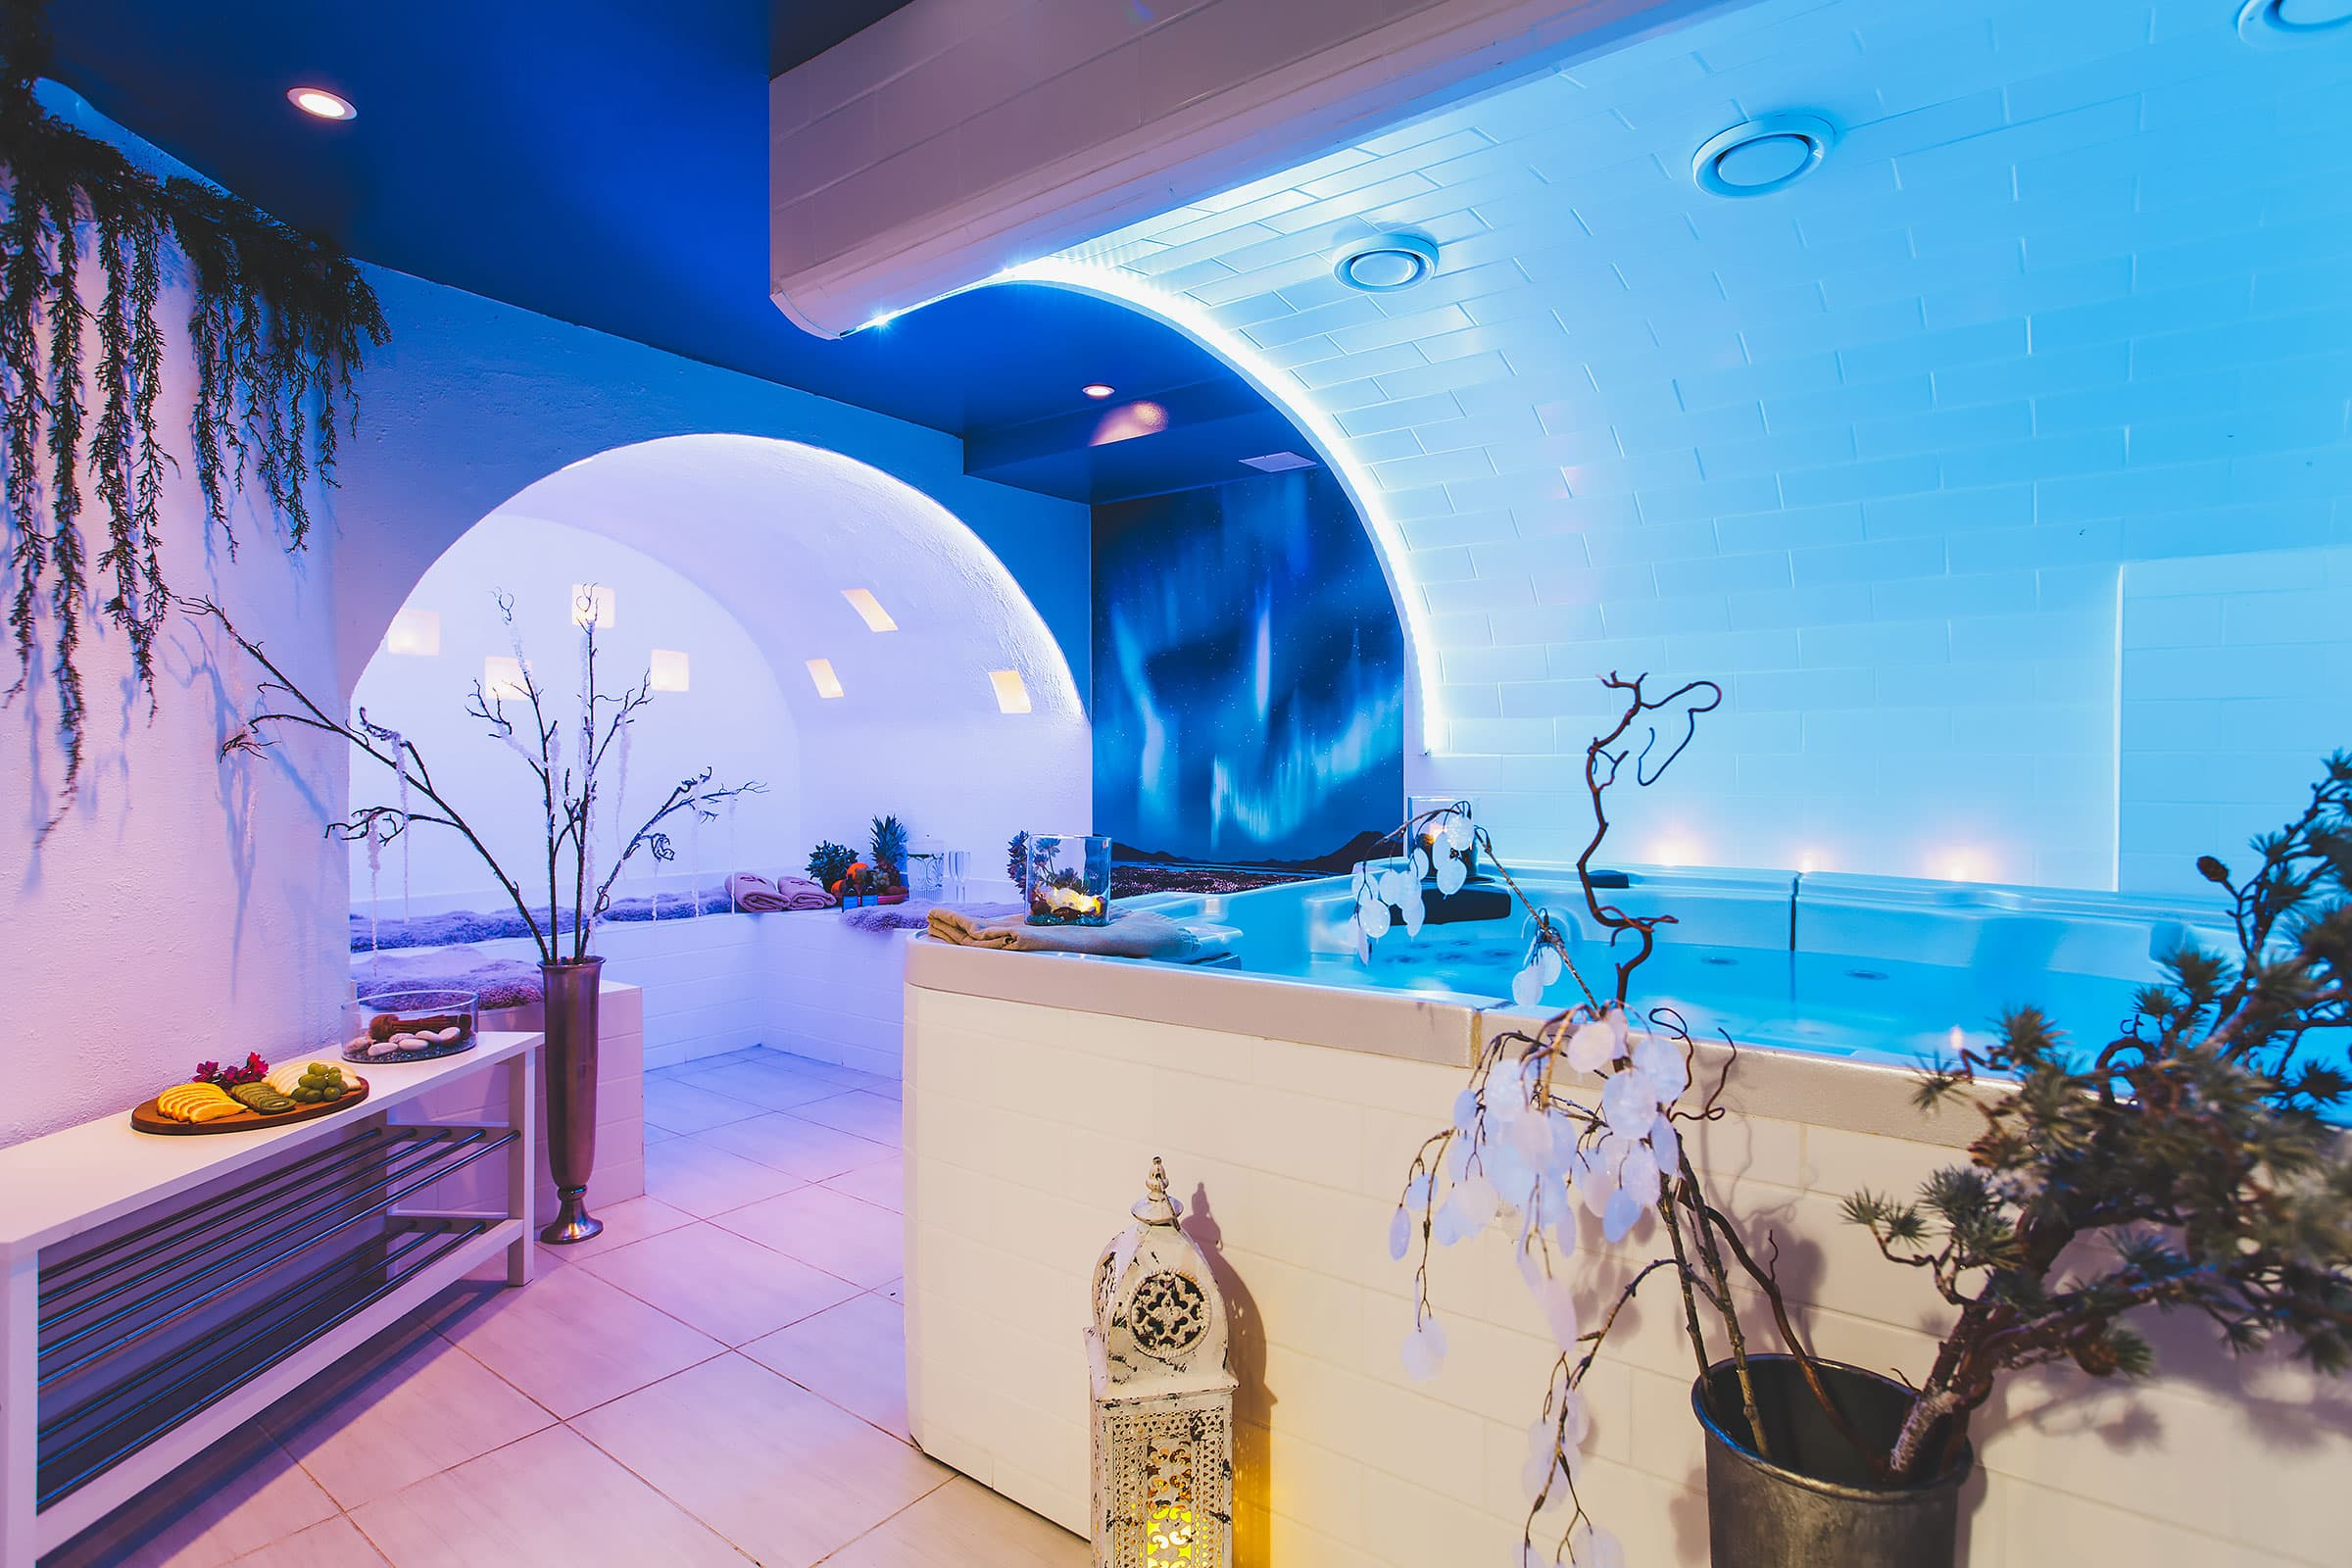 Jacuzzi Pool Utomhus The Guide To The Best Spas In Stockholm Thatsup